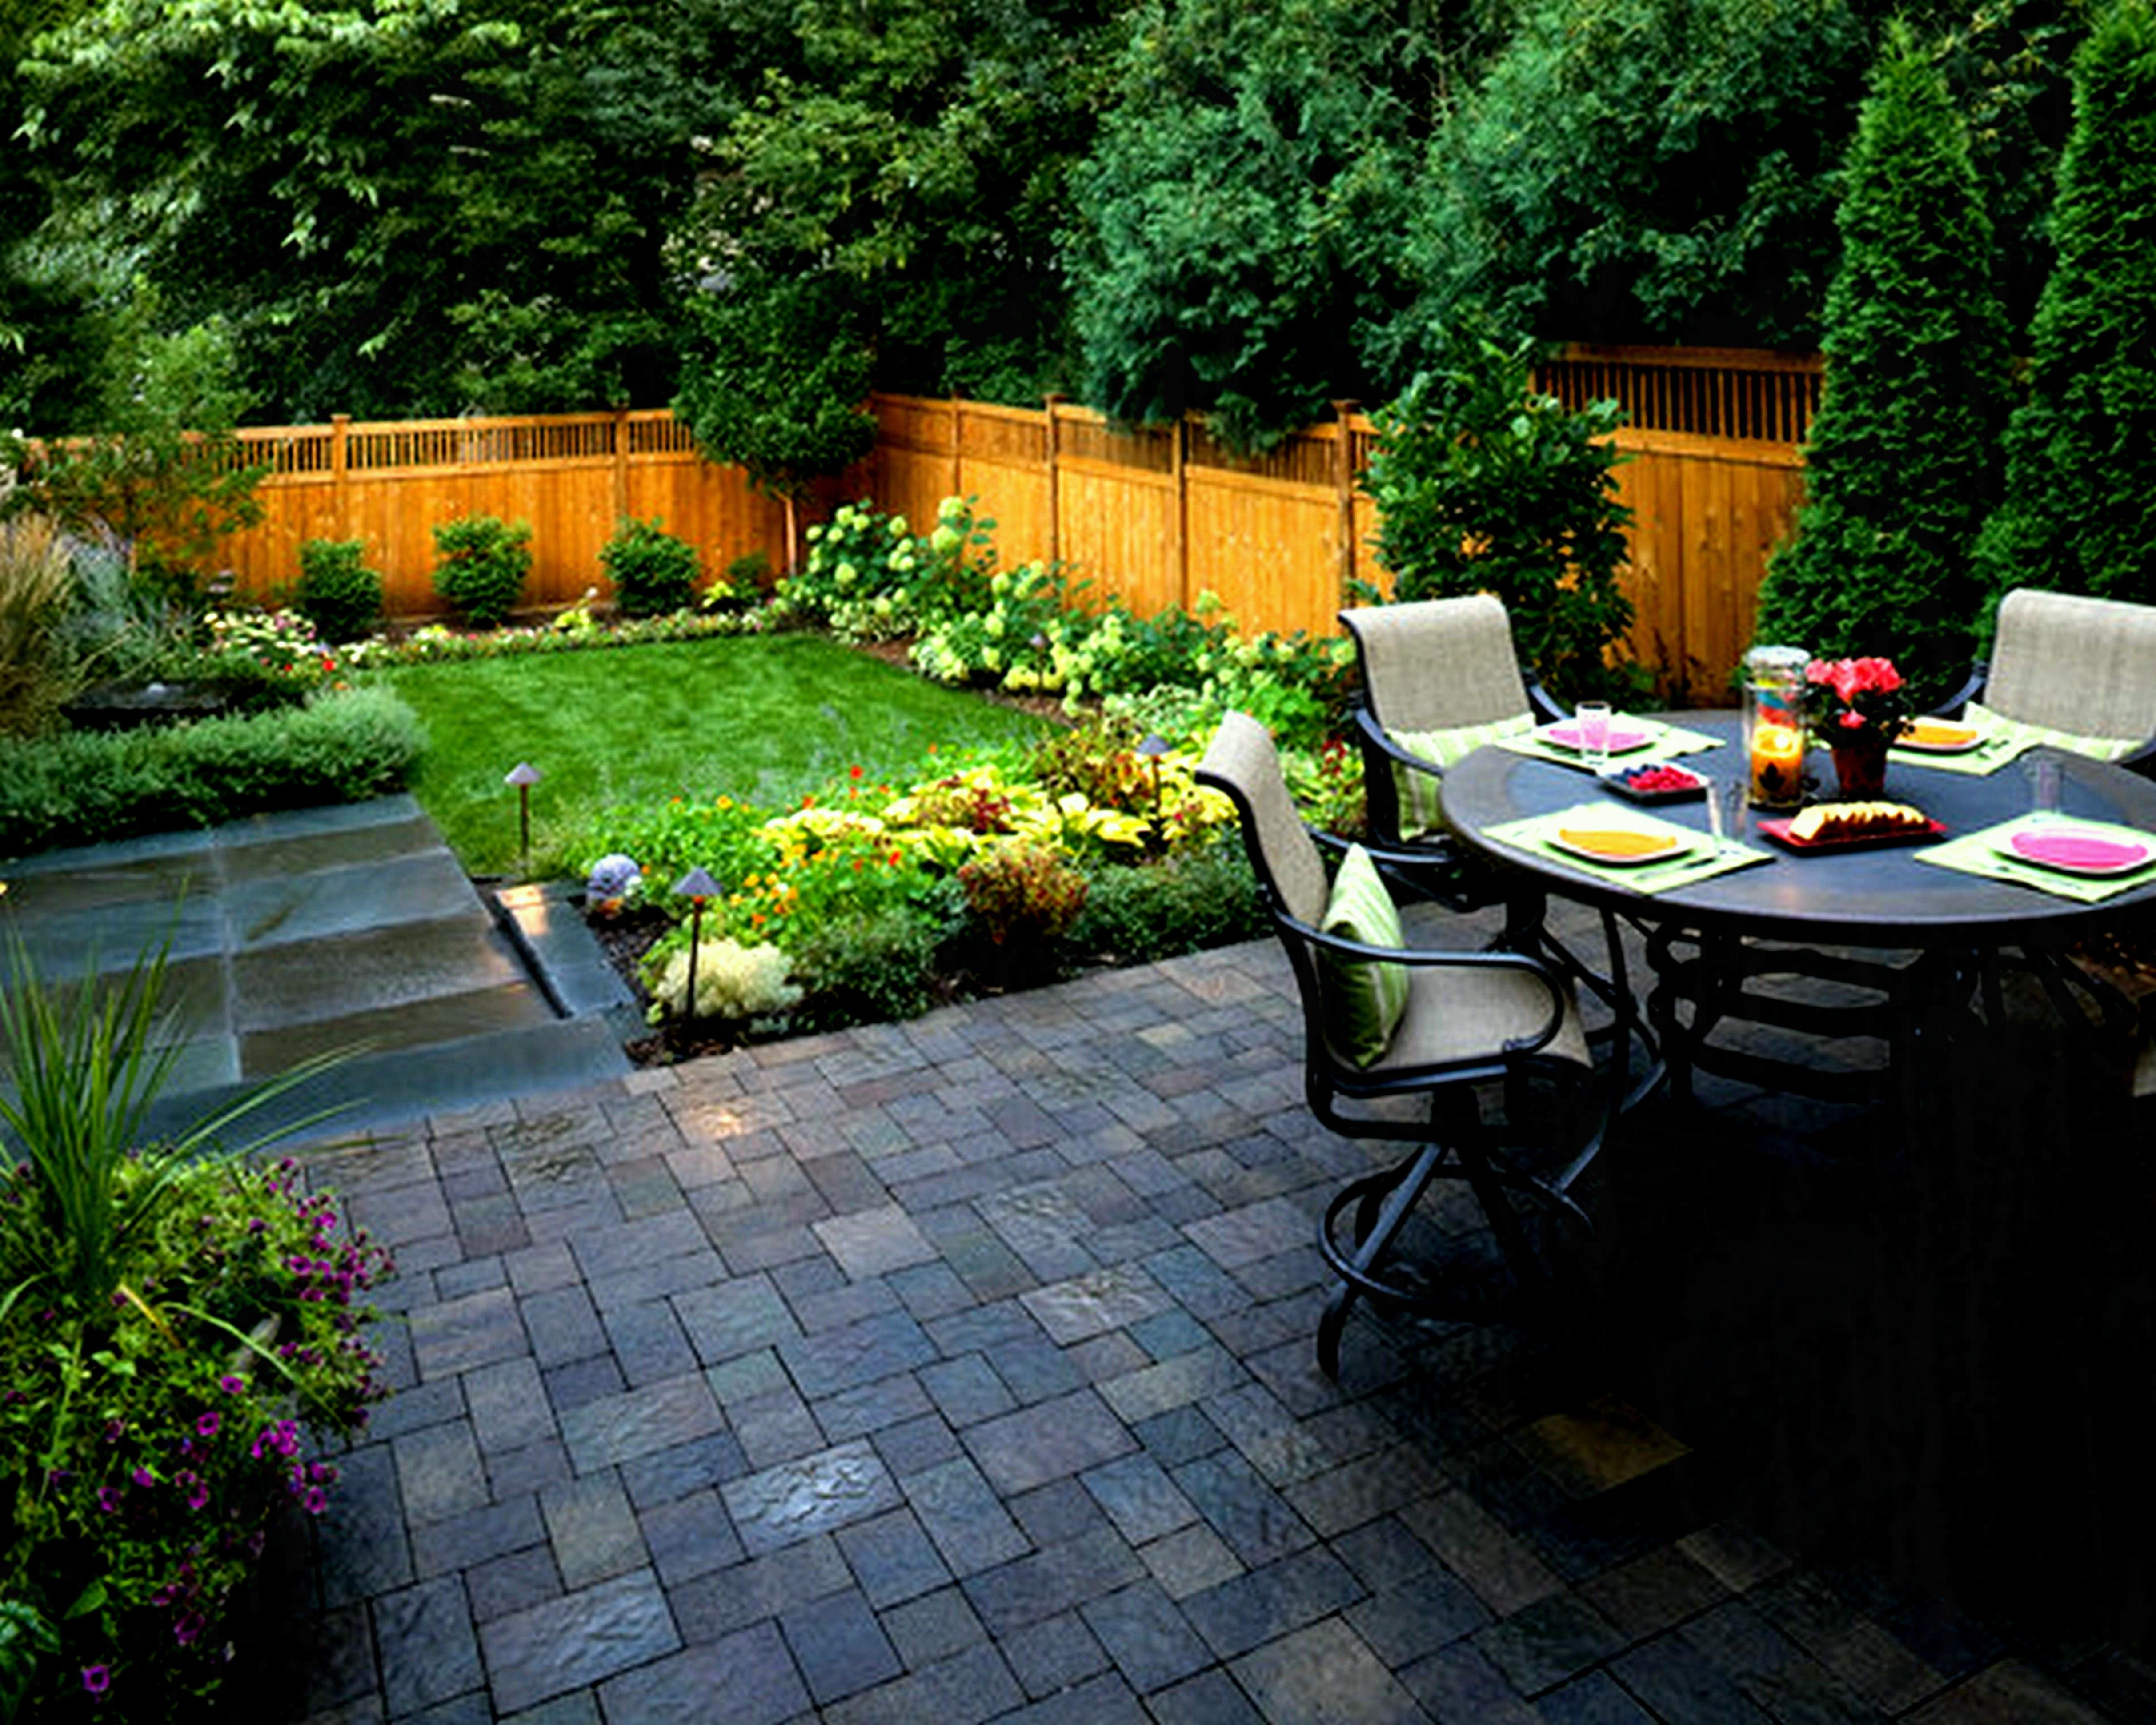 Diy Backyard Garden Ideas Diy Backyard Makeover With Landscaping within Backyard Makeover Ideas On A Budget